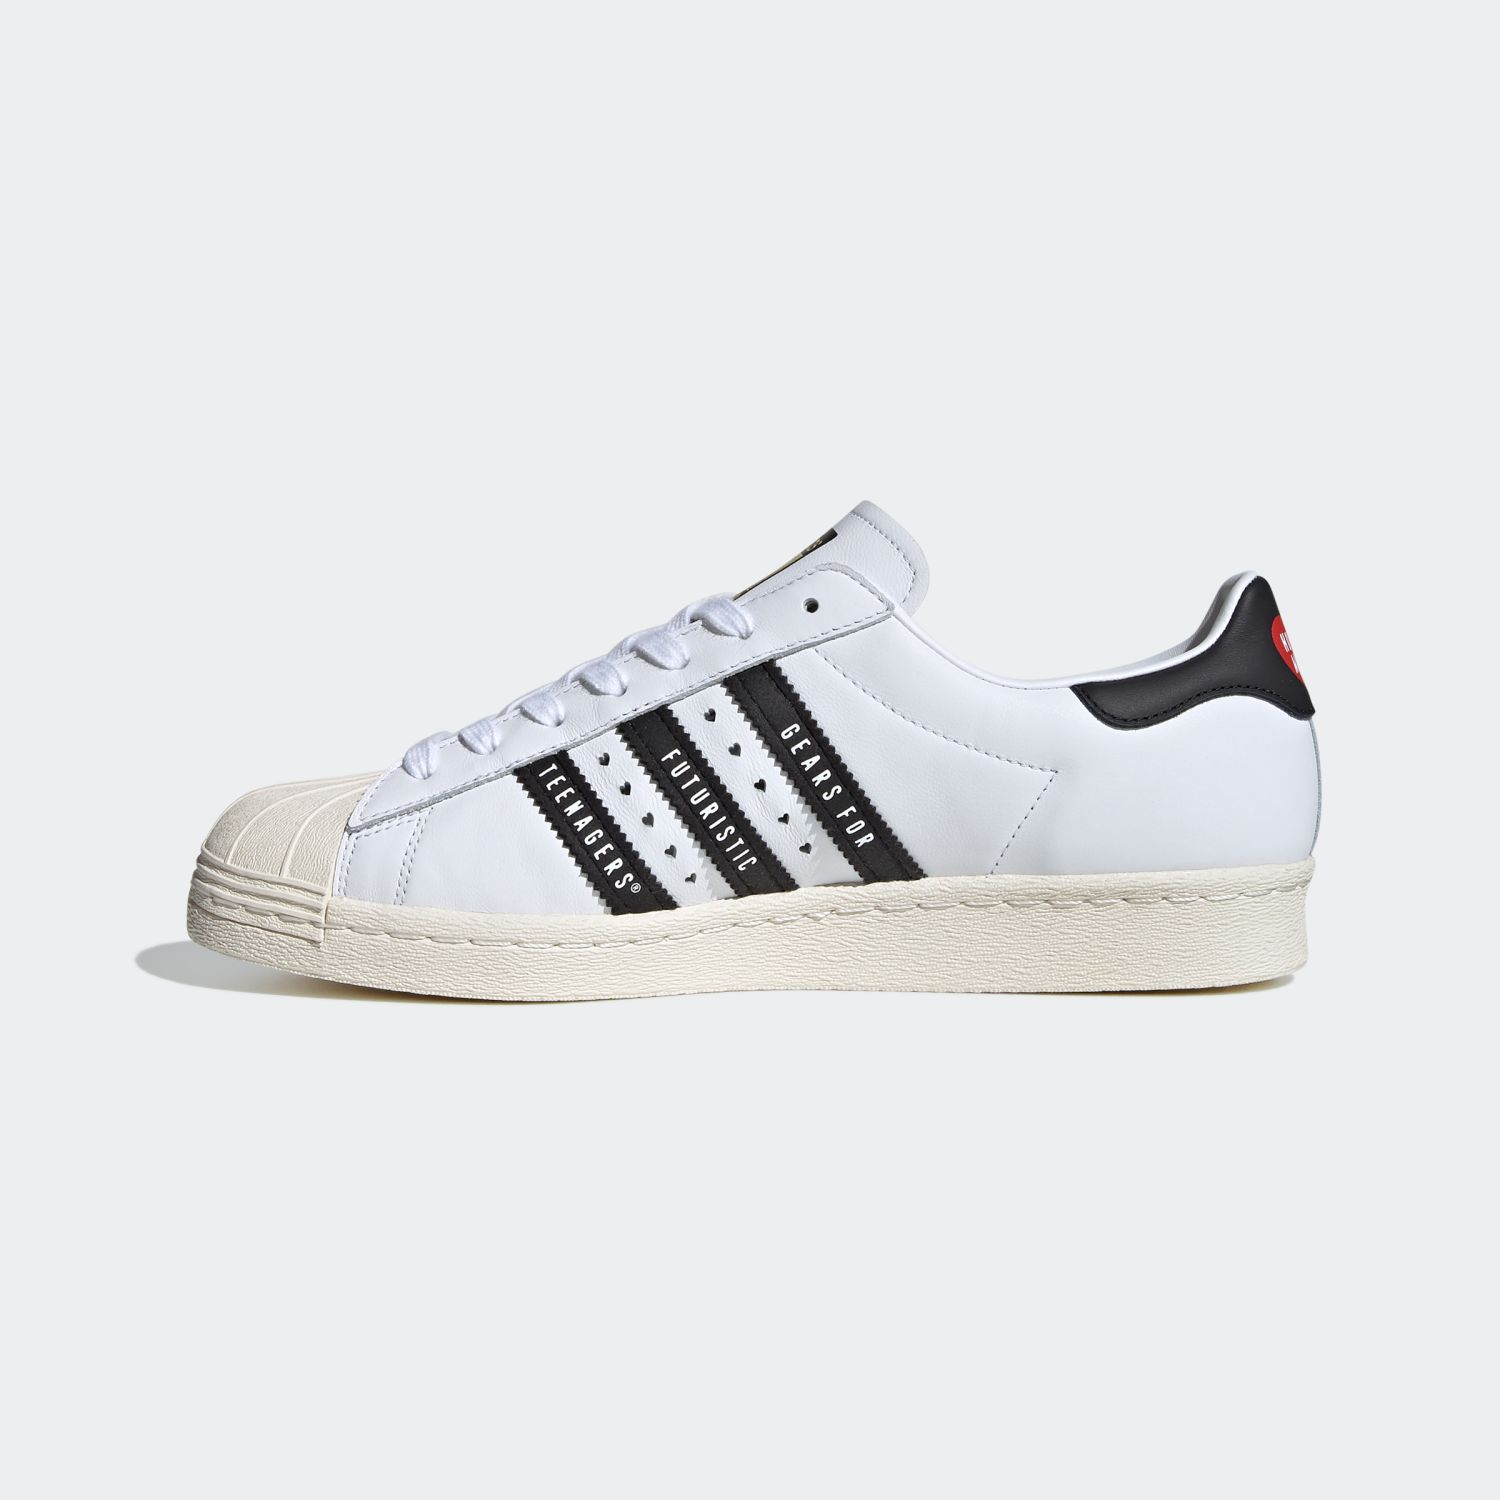 Superstar 80s Human Made®︎ White / Black [2]